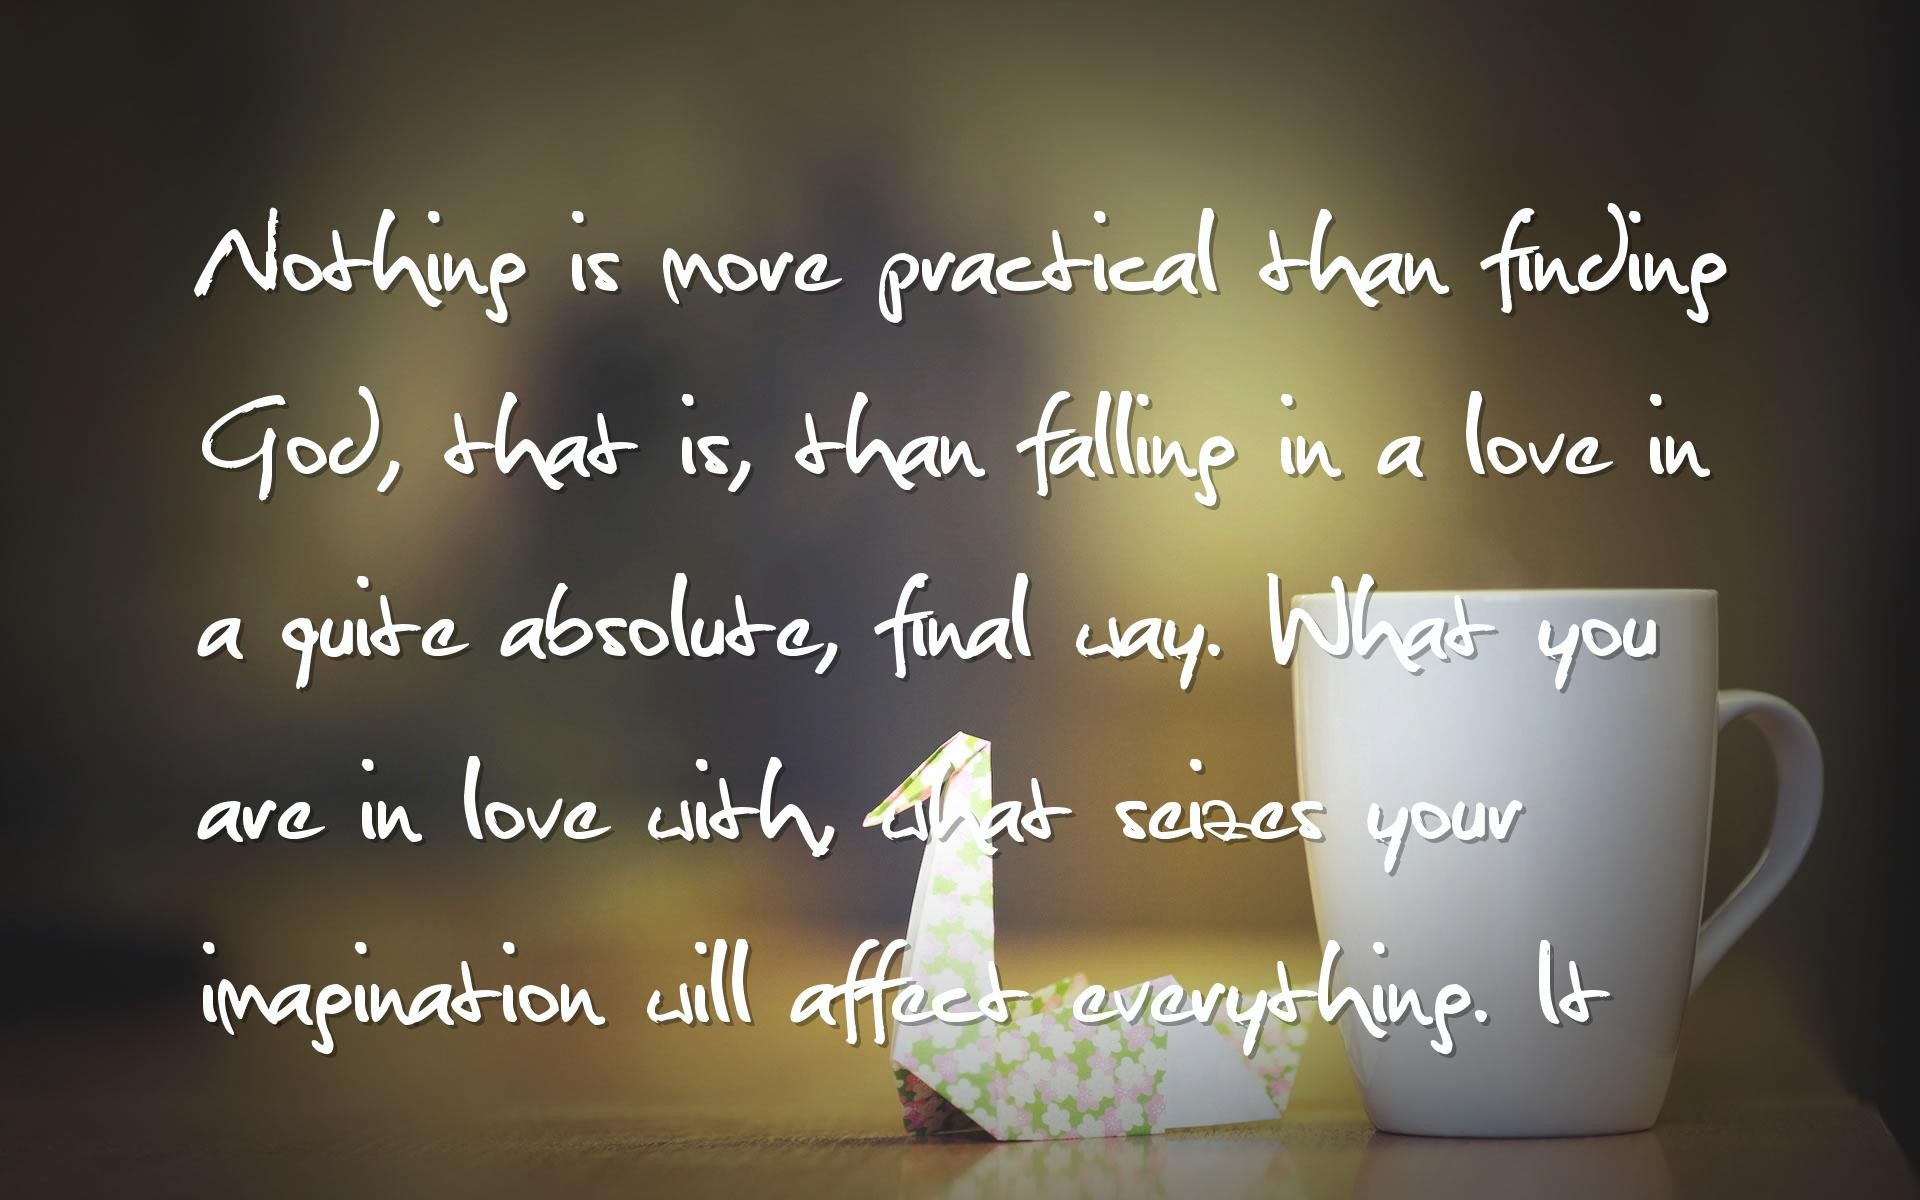 Quotes About Love: Practical Quotes About Love. QuotesGram